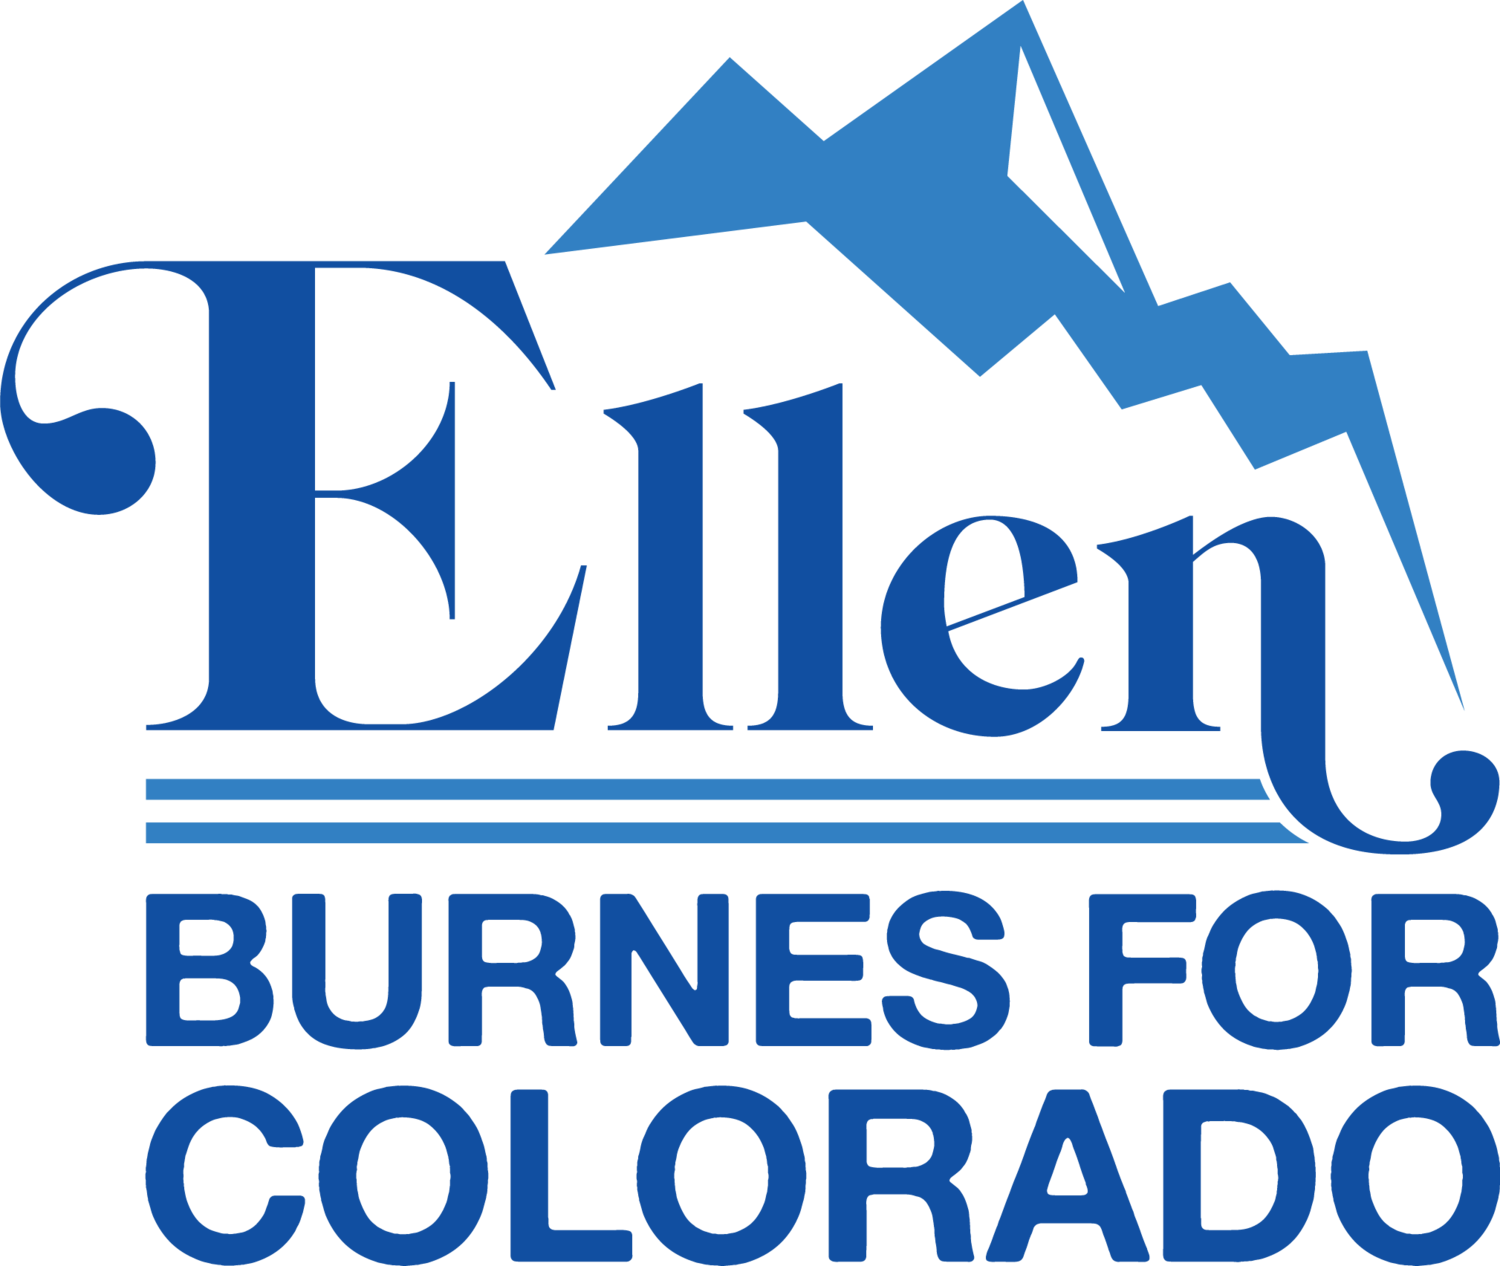 Ellen Burnes for Colorado